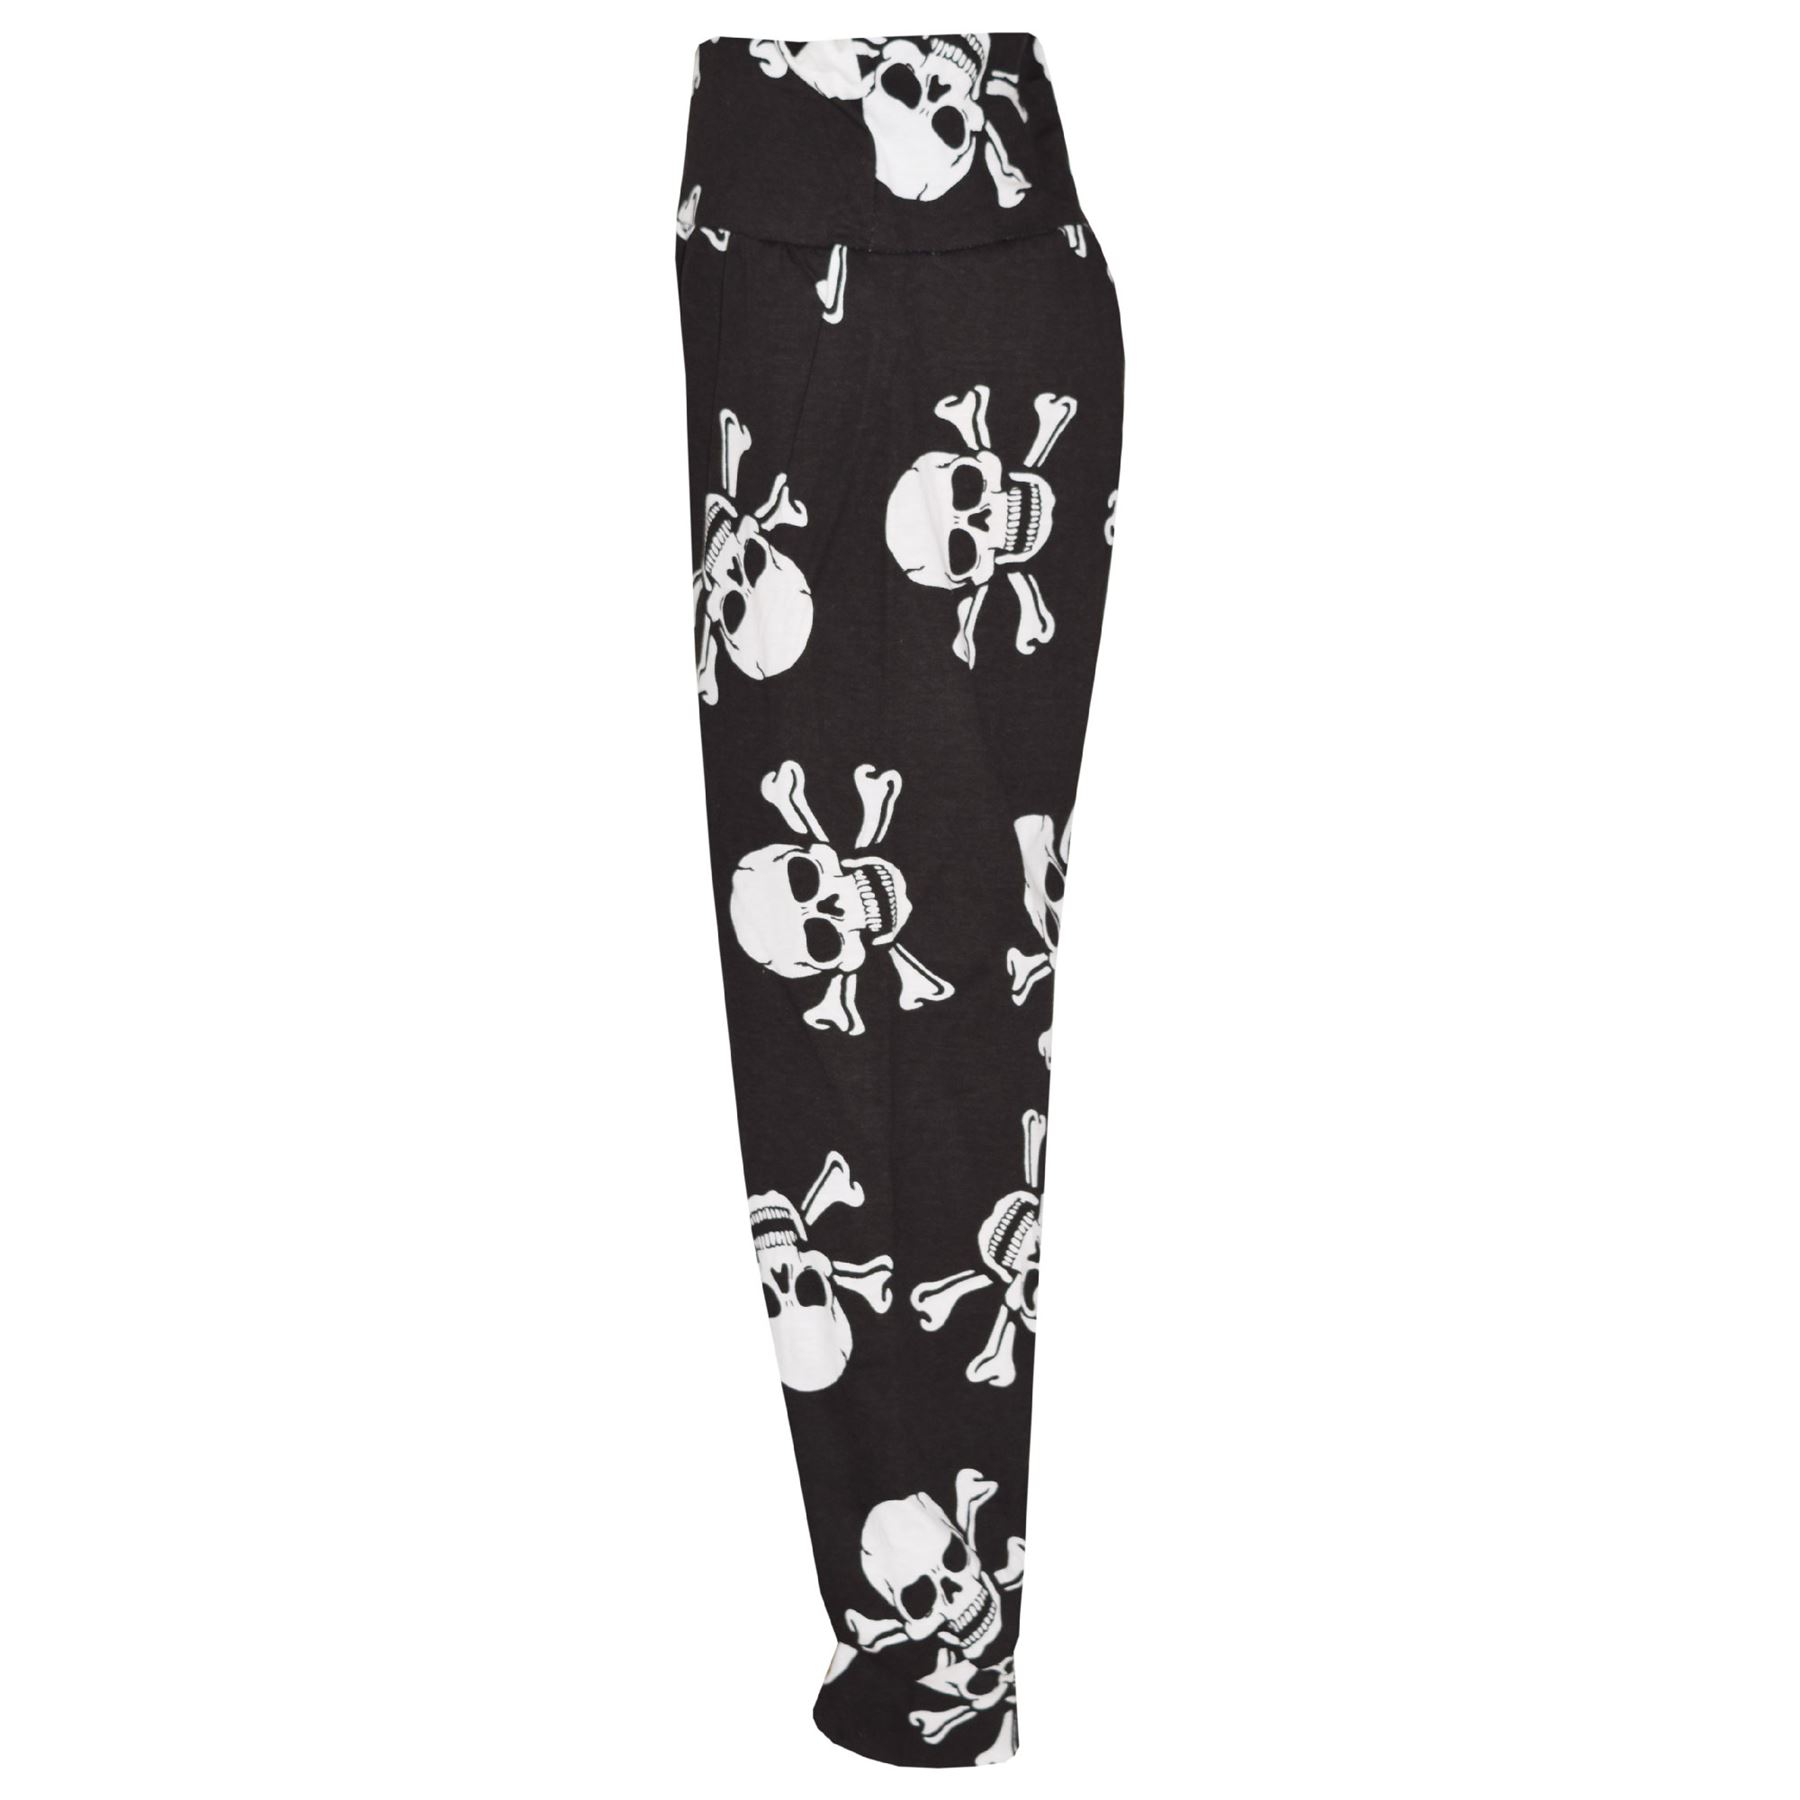 Kids-ali-baba-plain-color-modern-style-trousers-2-13-years thumbnail 24